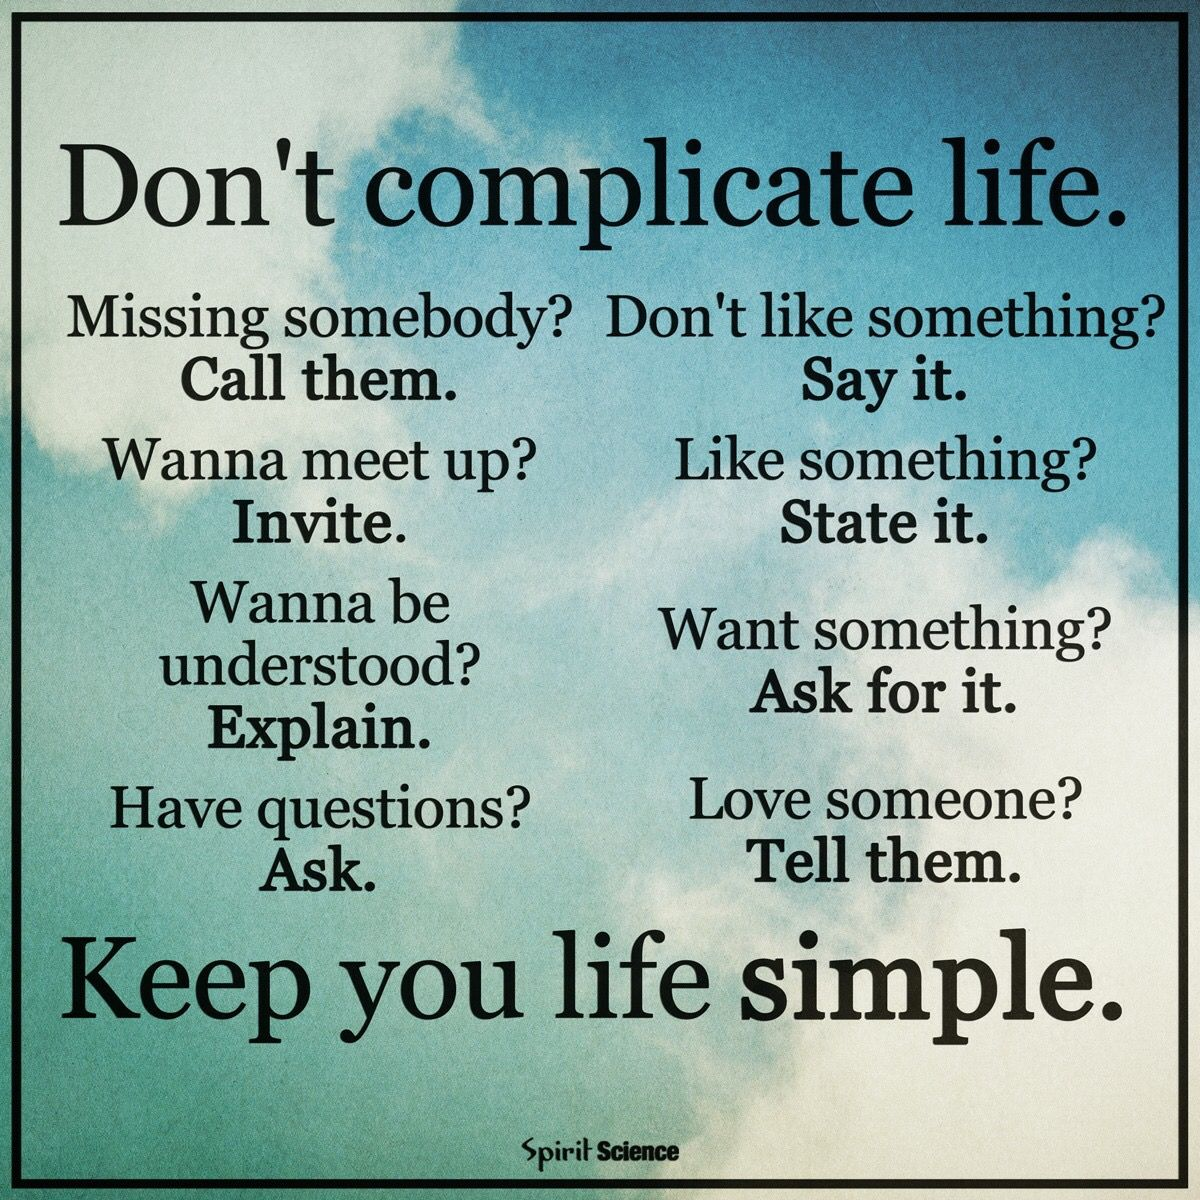 Wisdom About Life Quotes Keep It Simple❣It's All About The Little Things❣ Www